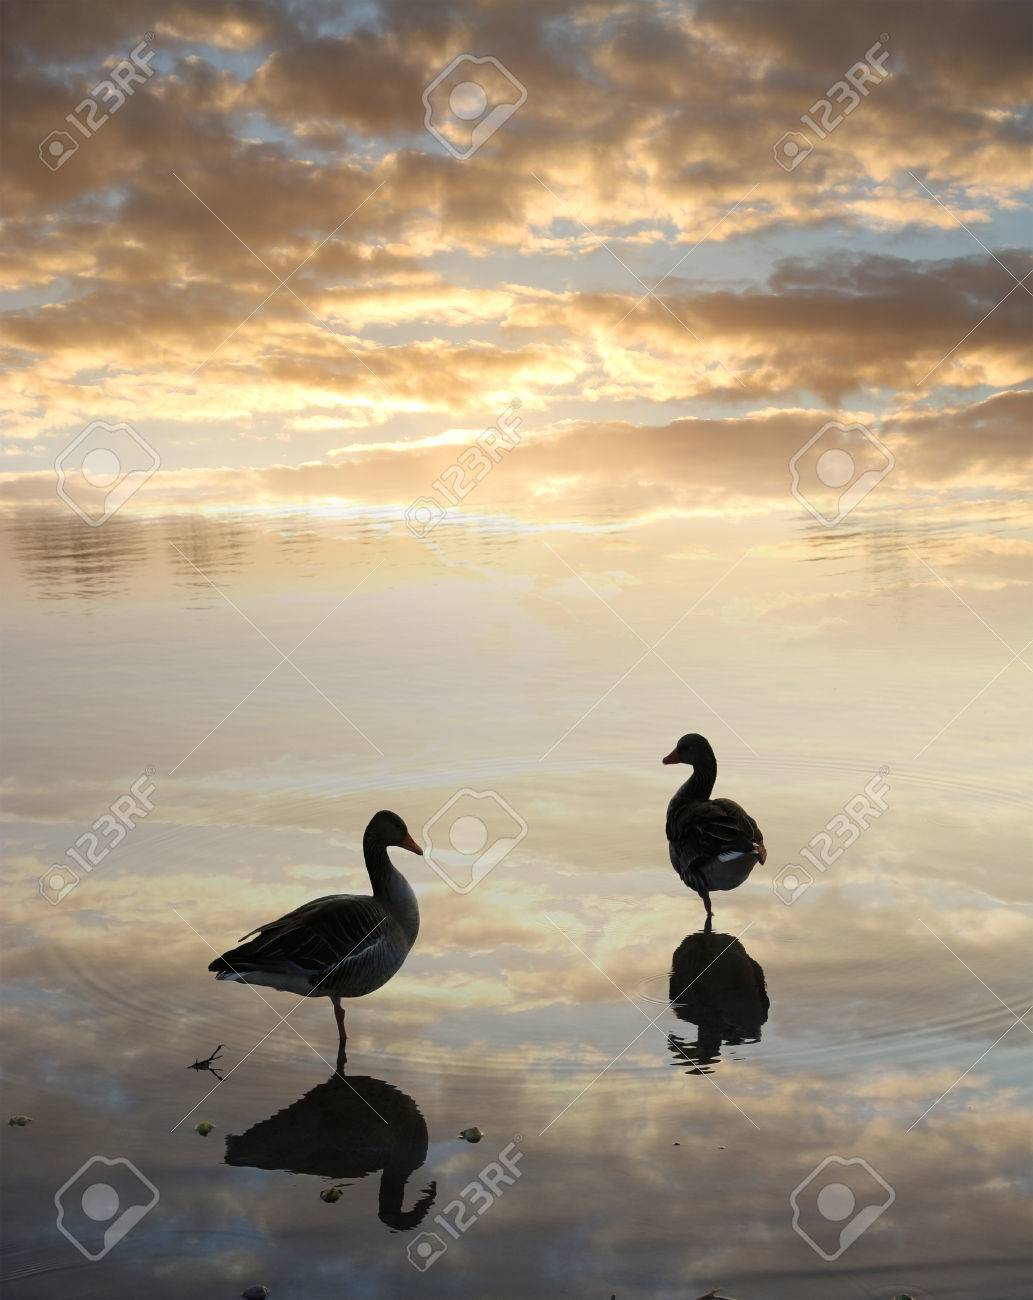 two black ducks swimming in a lake images u0026 stock pictures